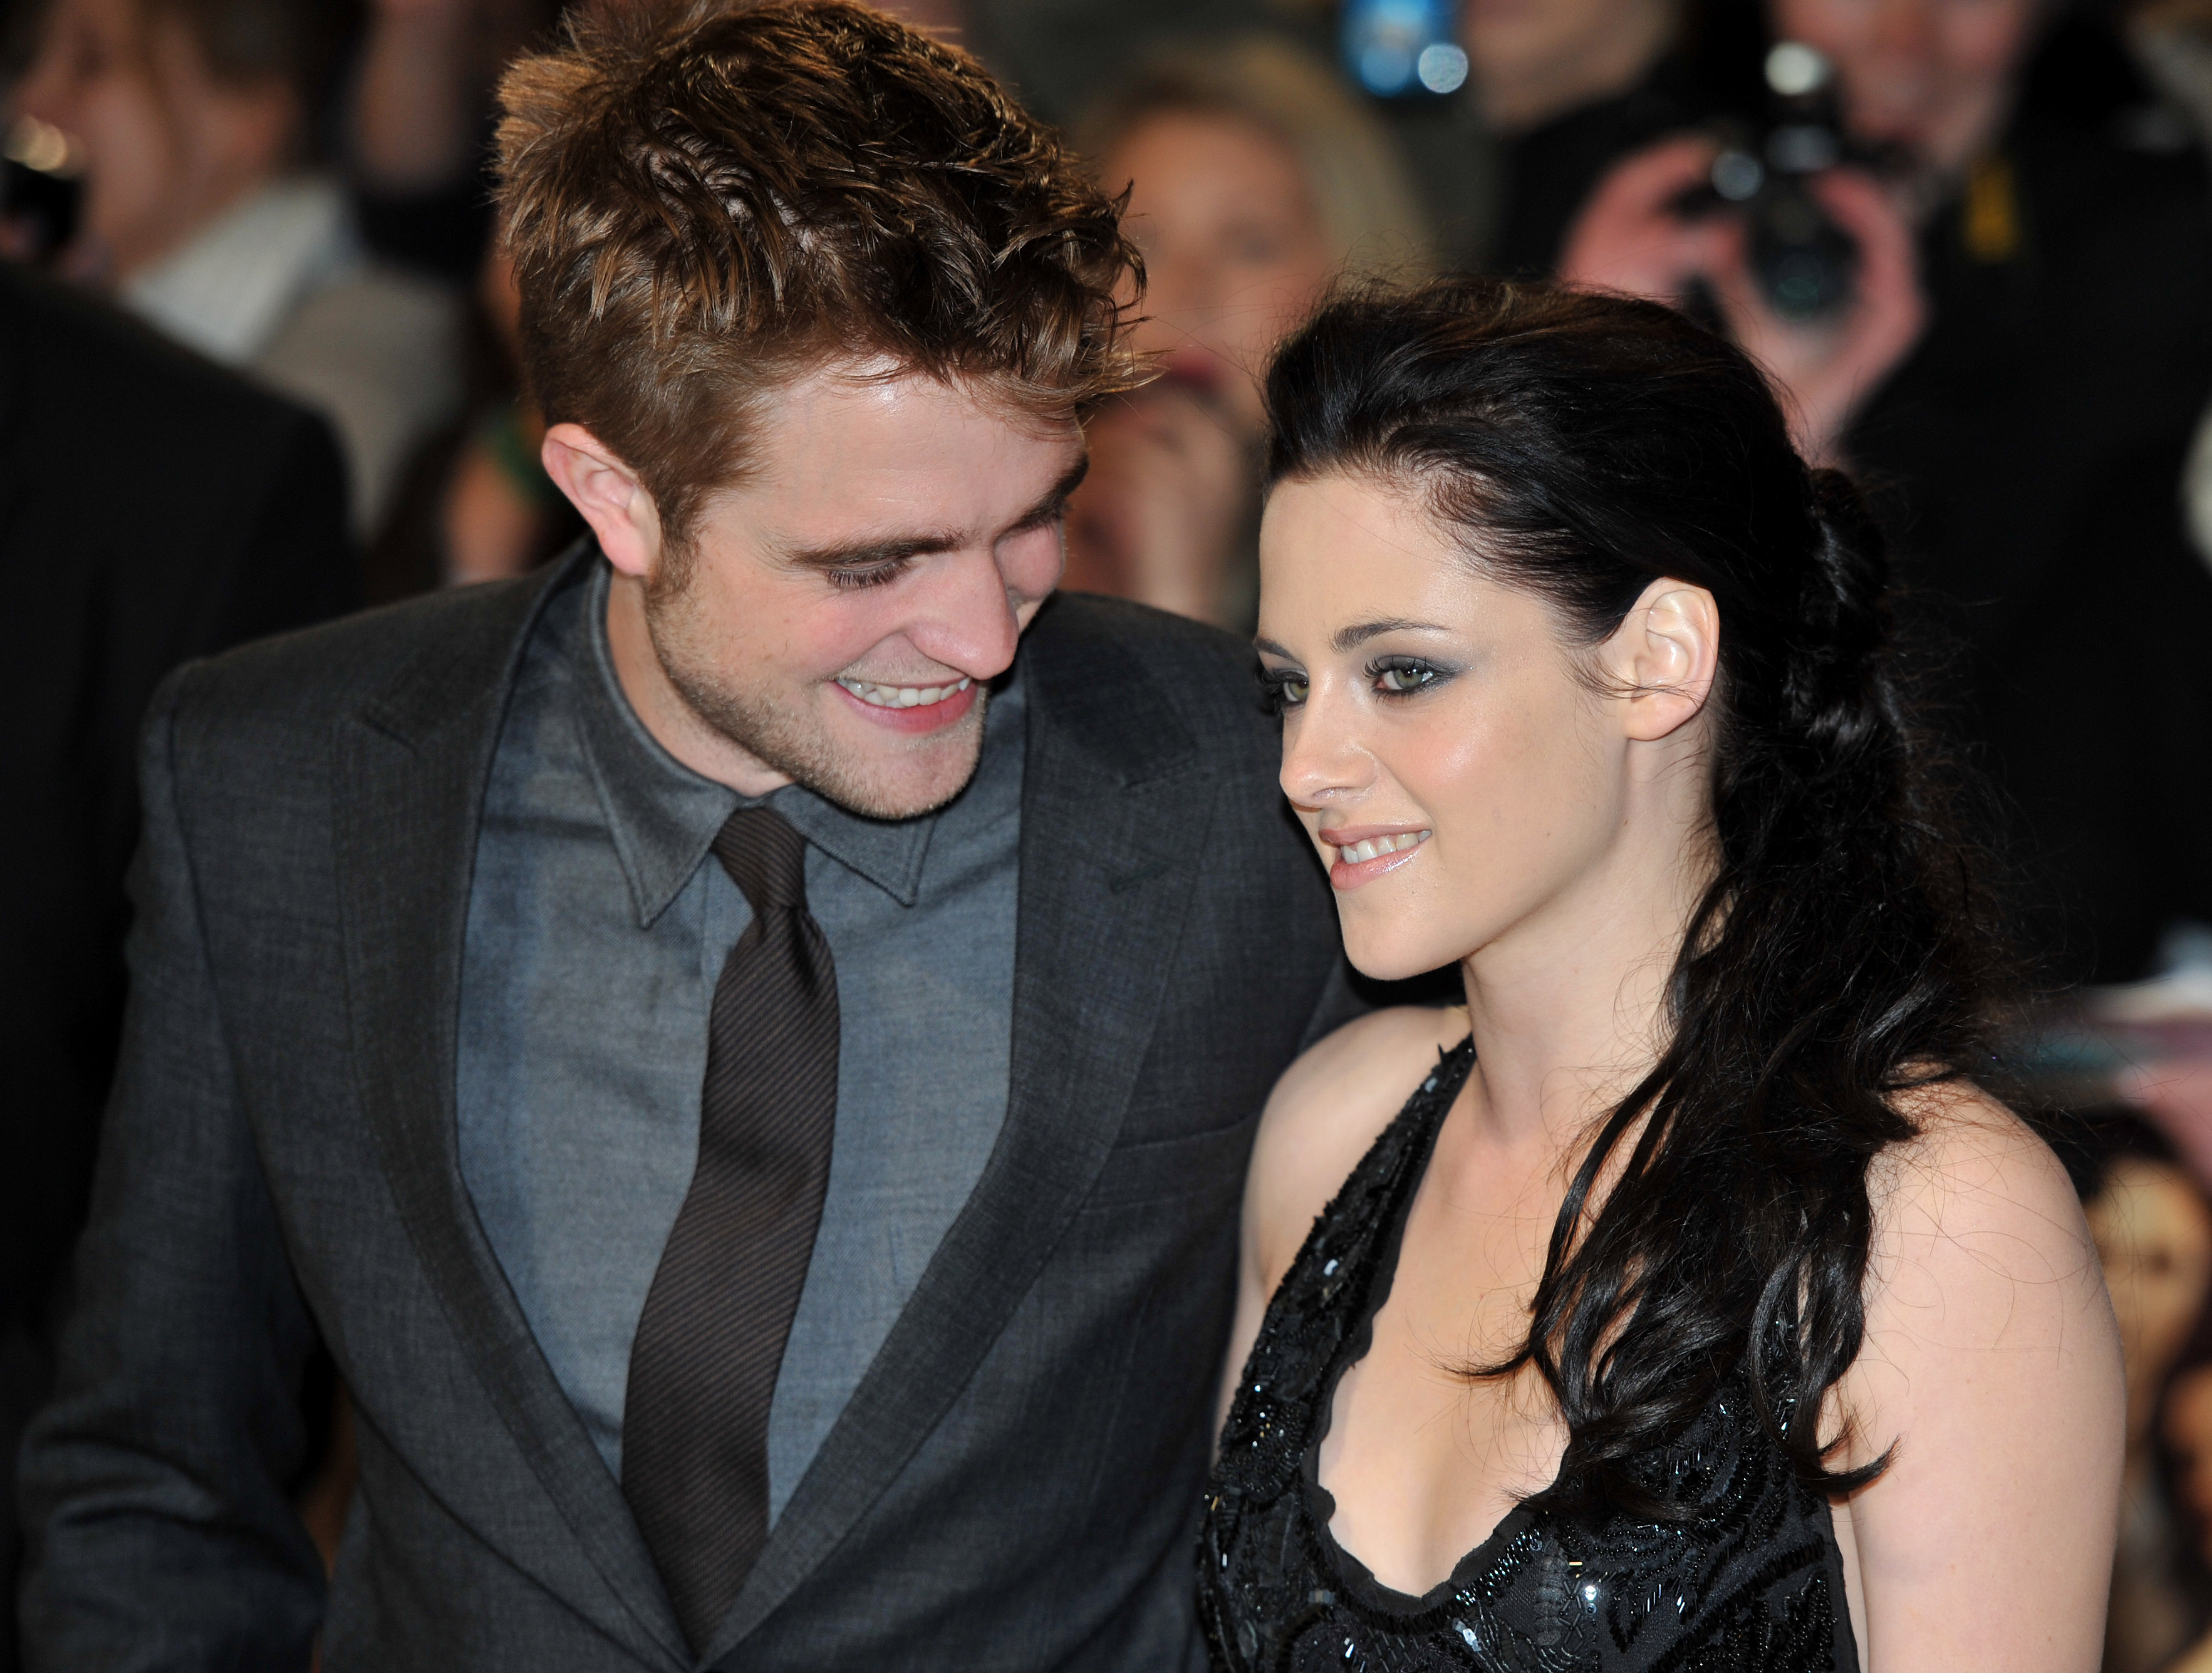 Oh, boy, it's 2009 all over again! Check out some of the best reactions to the rumors that Robsten might be back on! (Photo: WENN)